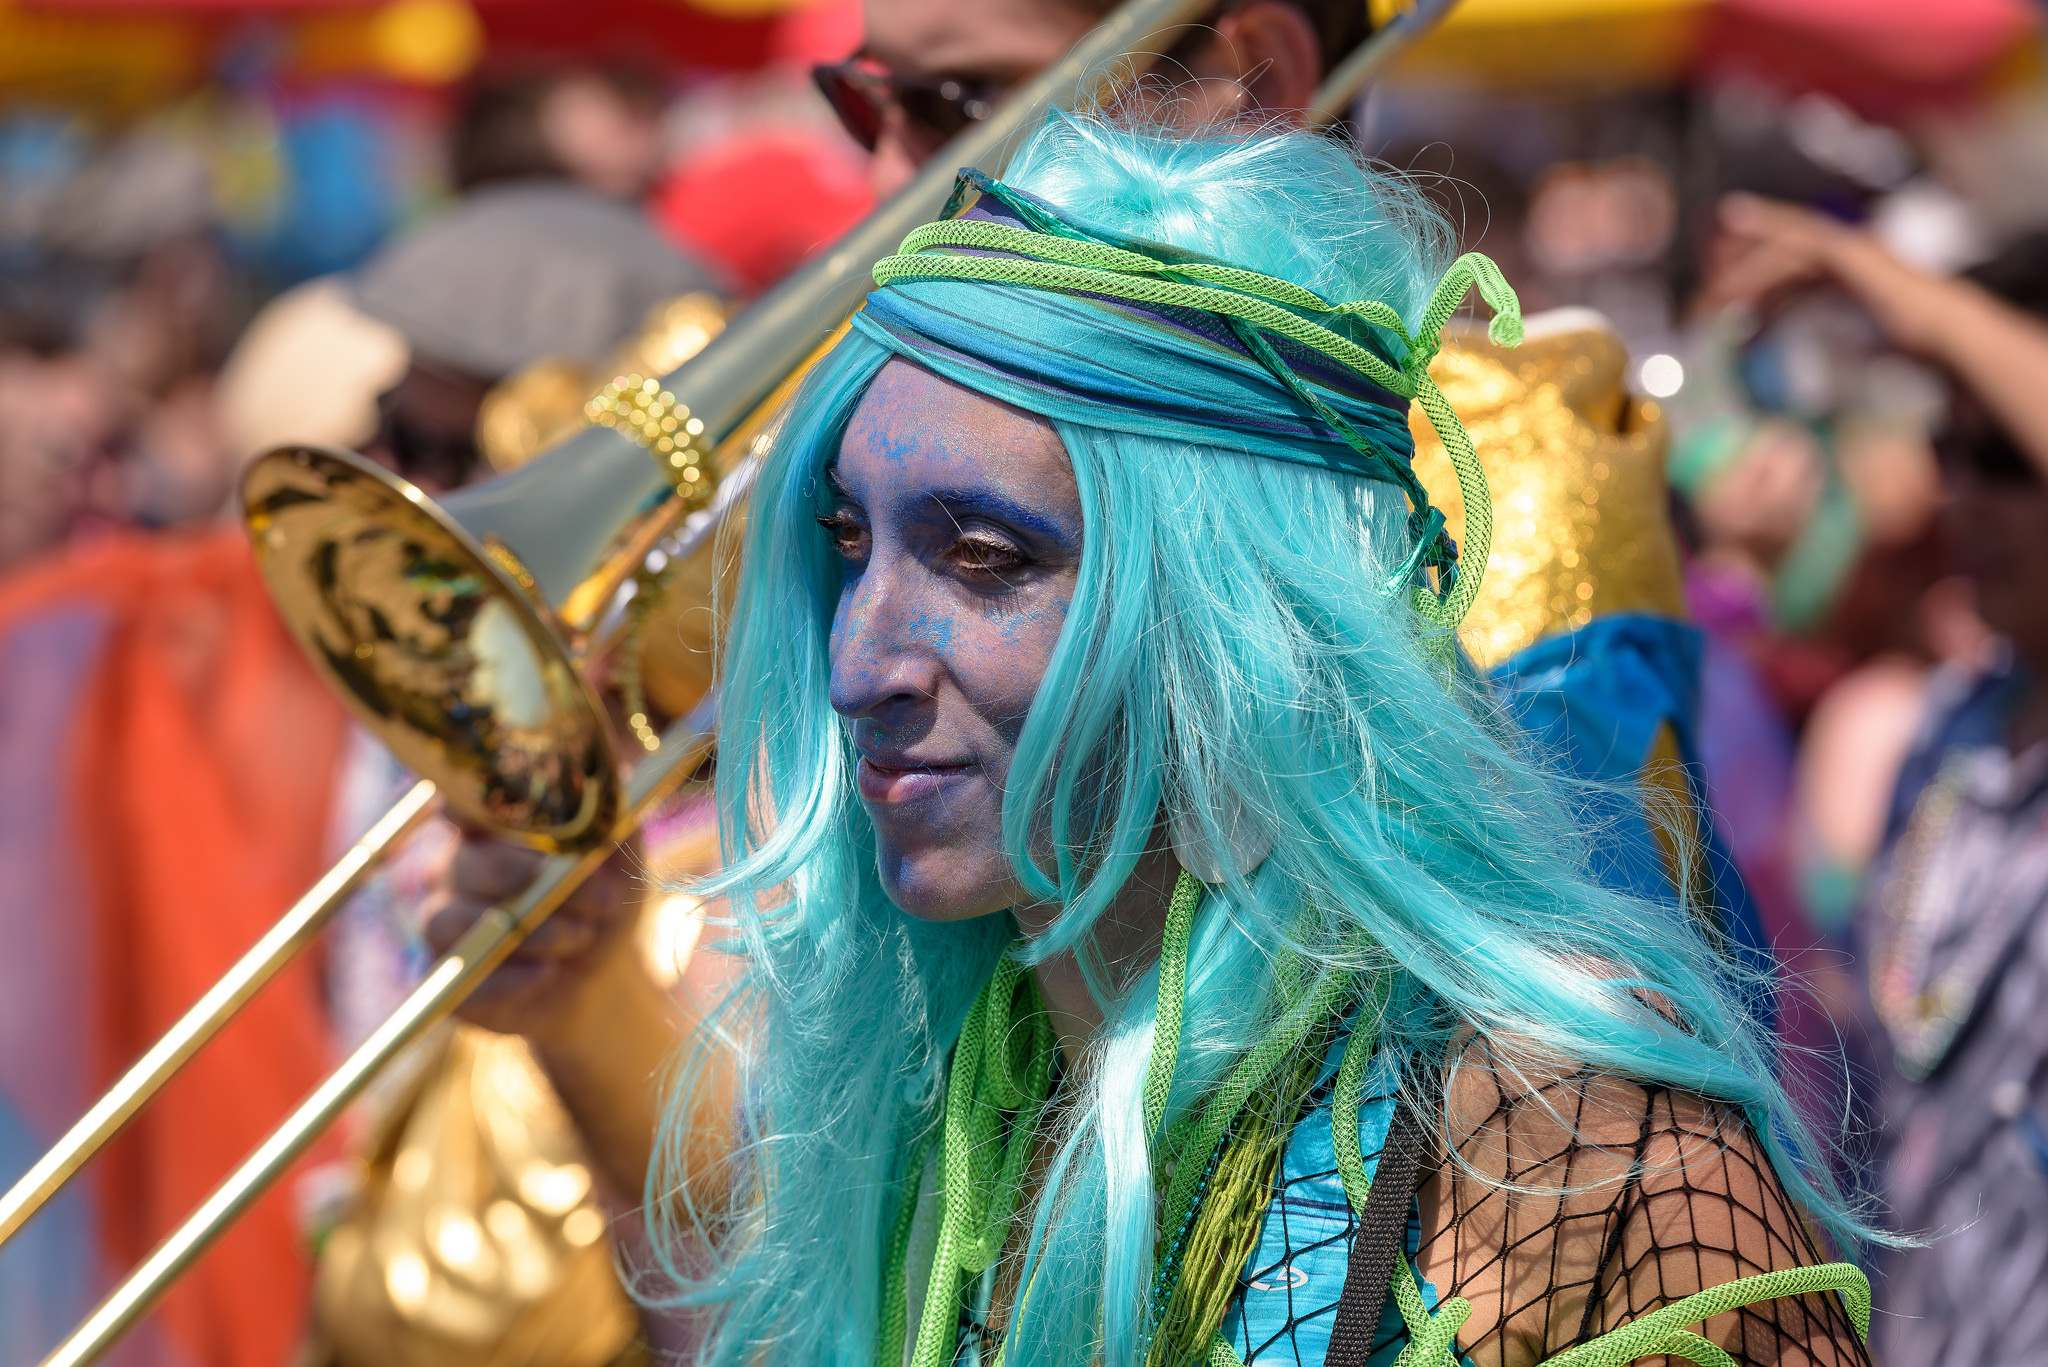 mermaid parade4 2016 Coney Island Mermaid Parade in NYC